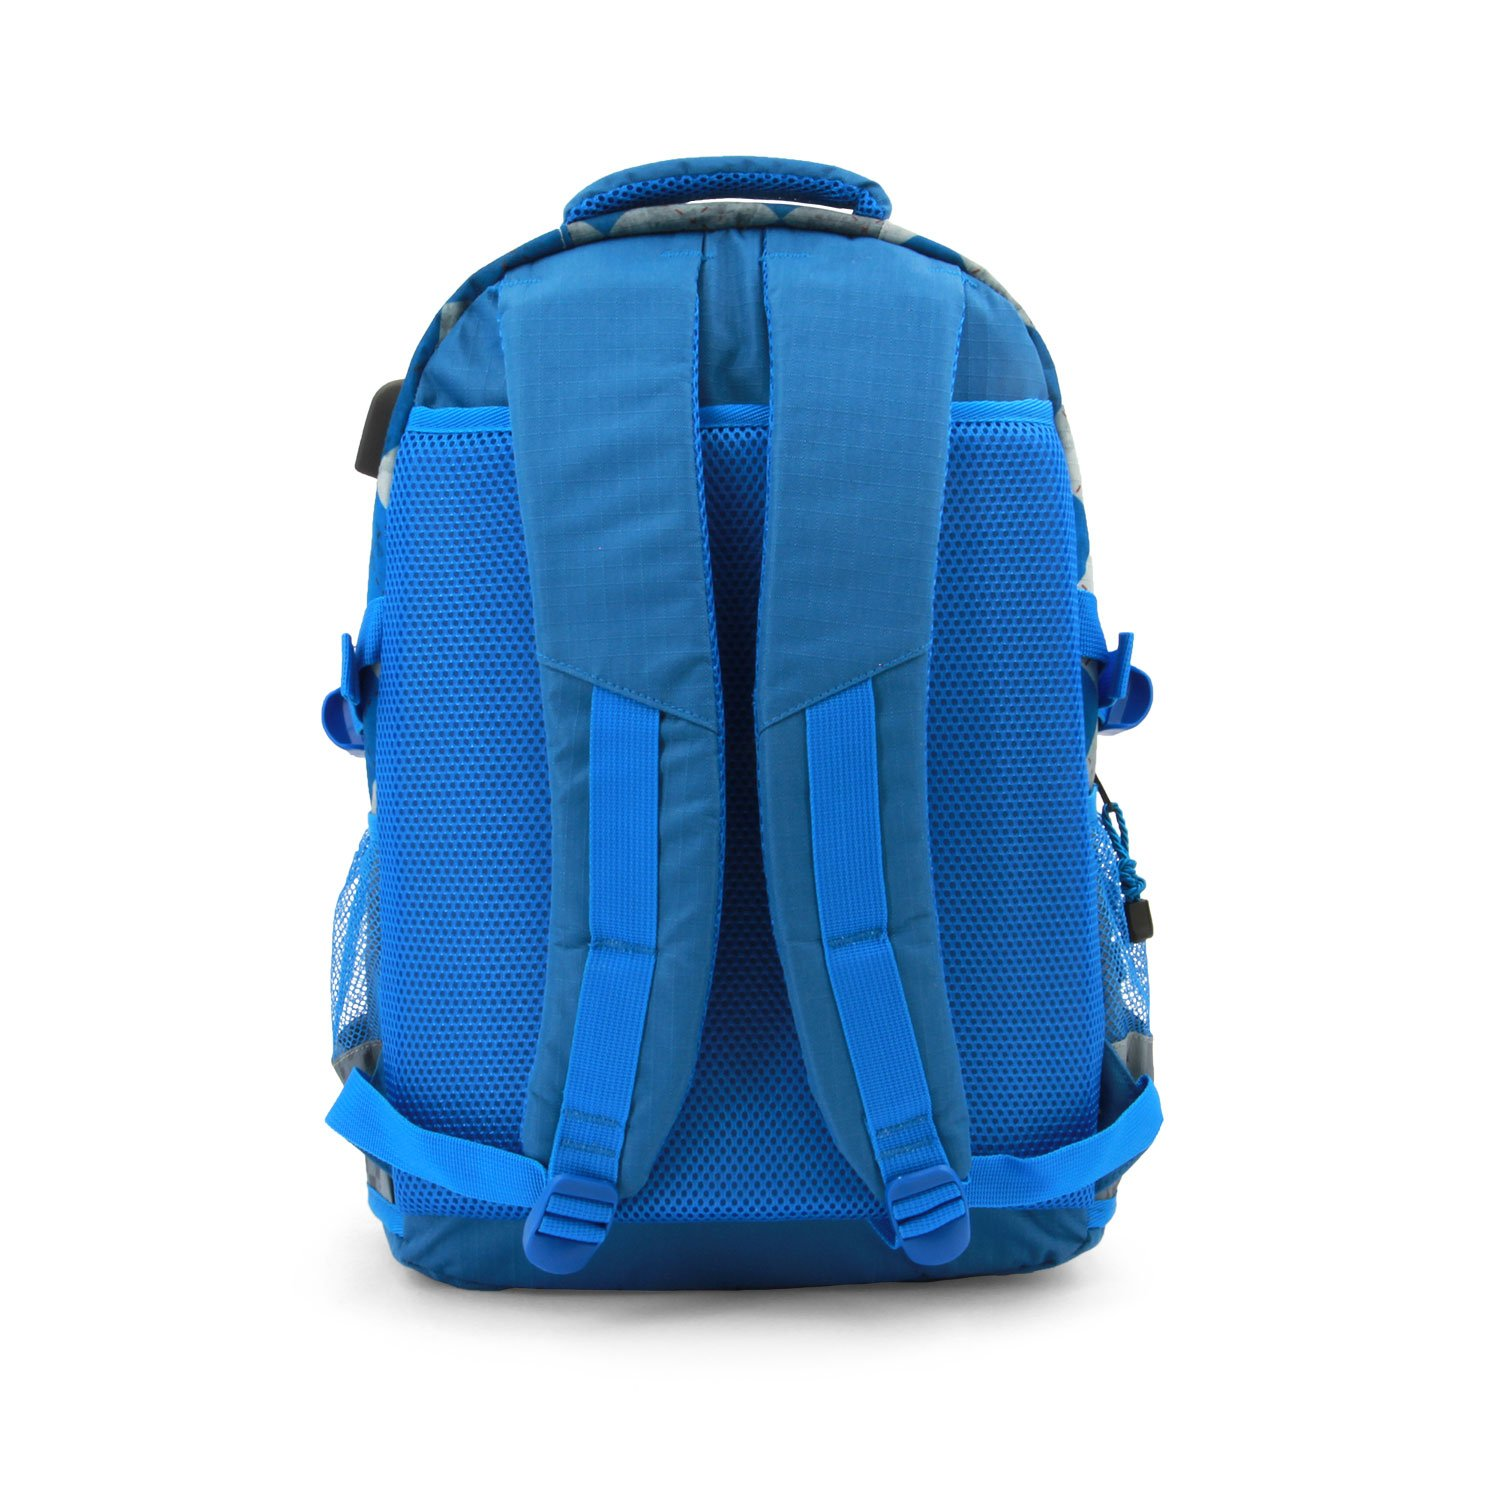 Amazon.com : Harry Potter Quidditch Ravenclaw Backpack 44cm : Office Products